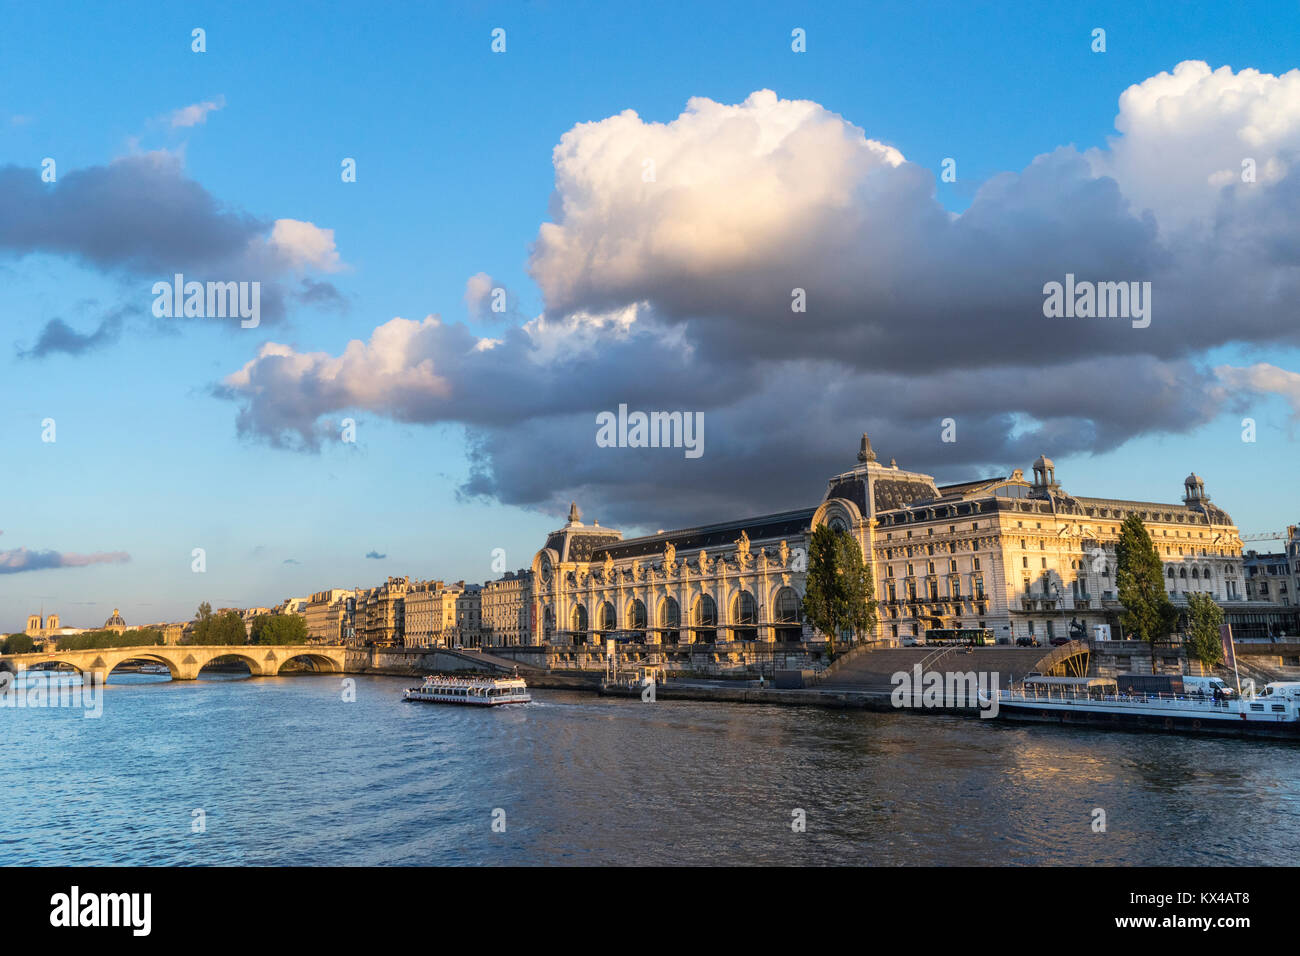 France, Paris, Musee d'Orsay, River Seine - Stock Image